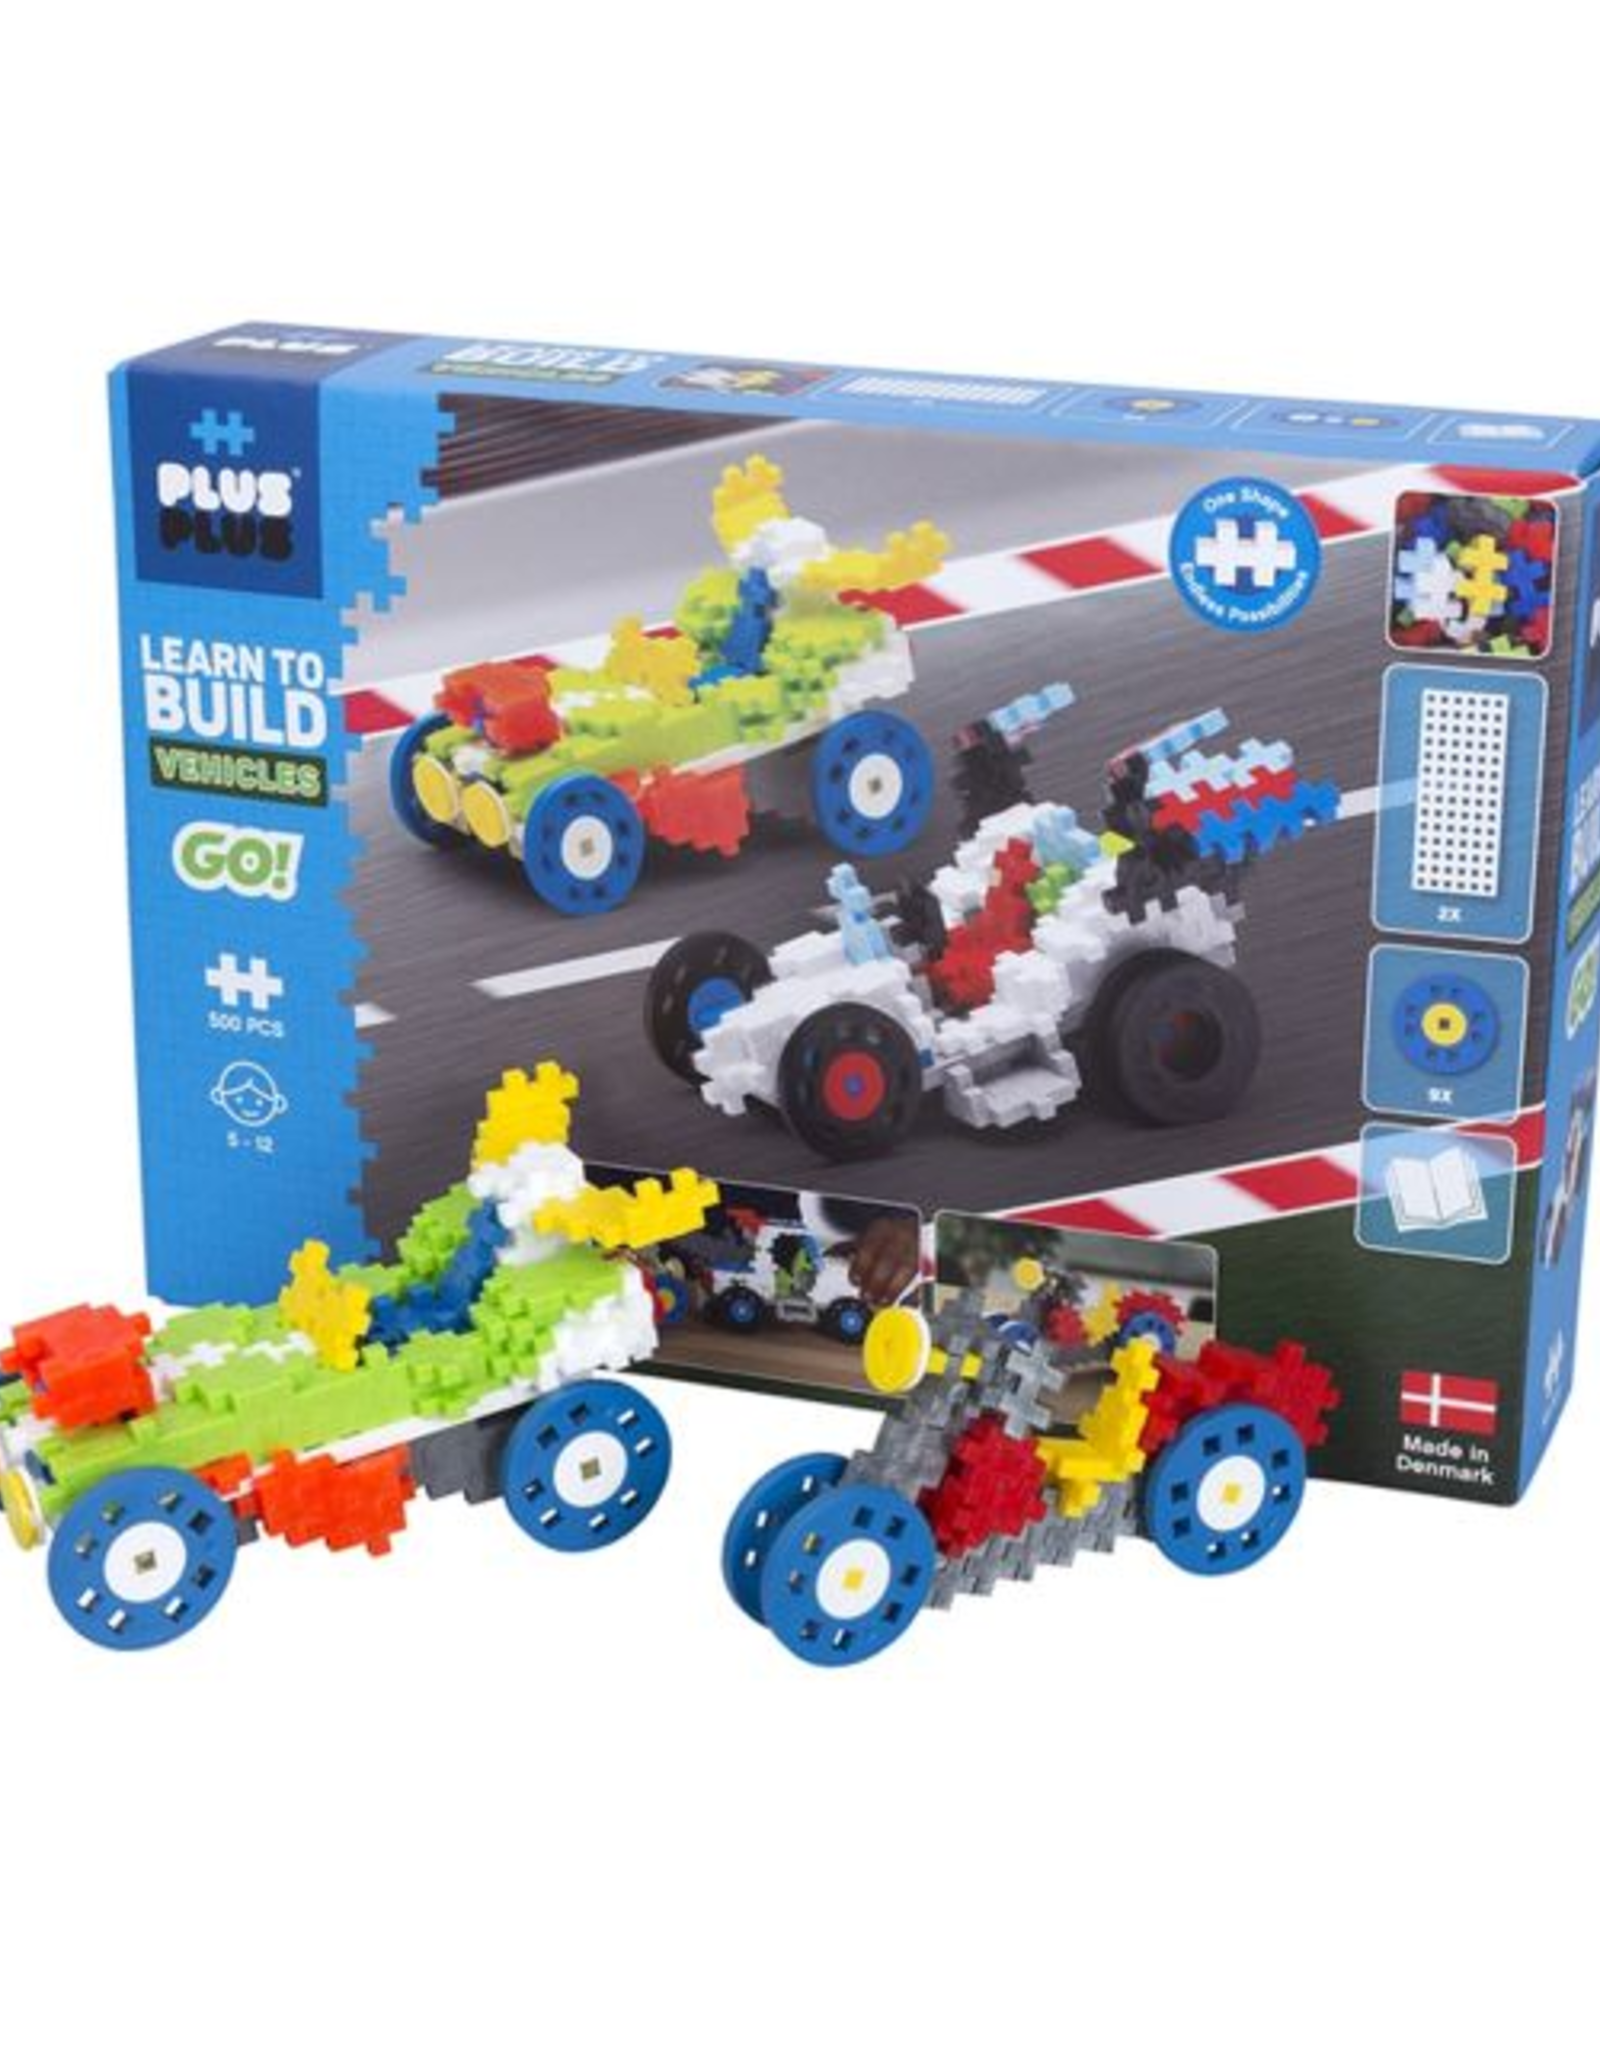 Plus-Plus Learn to Build Vehicles